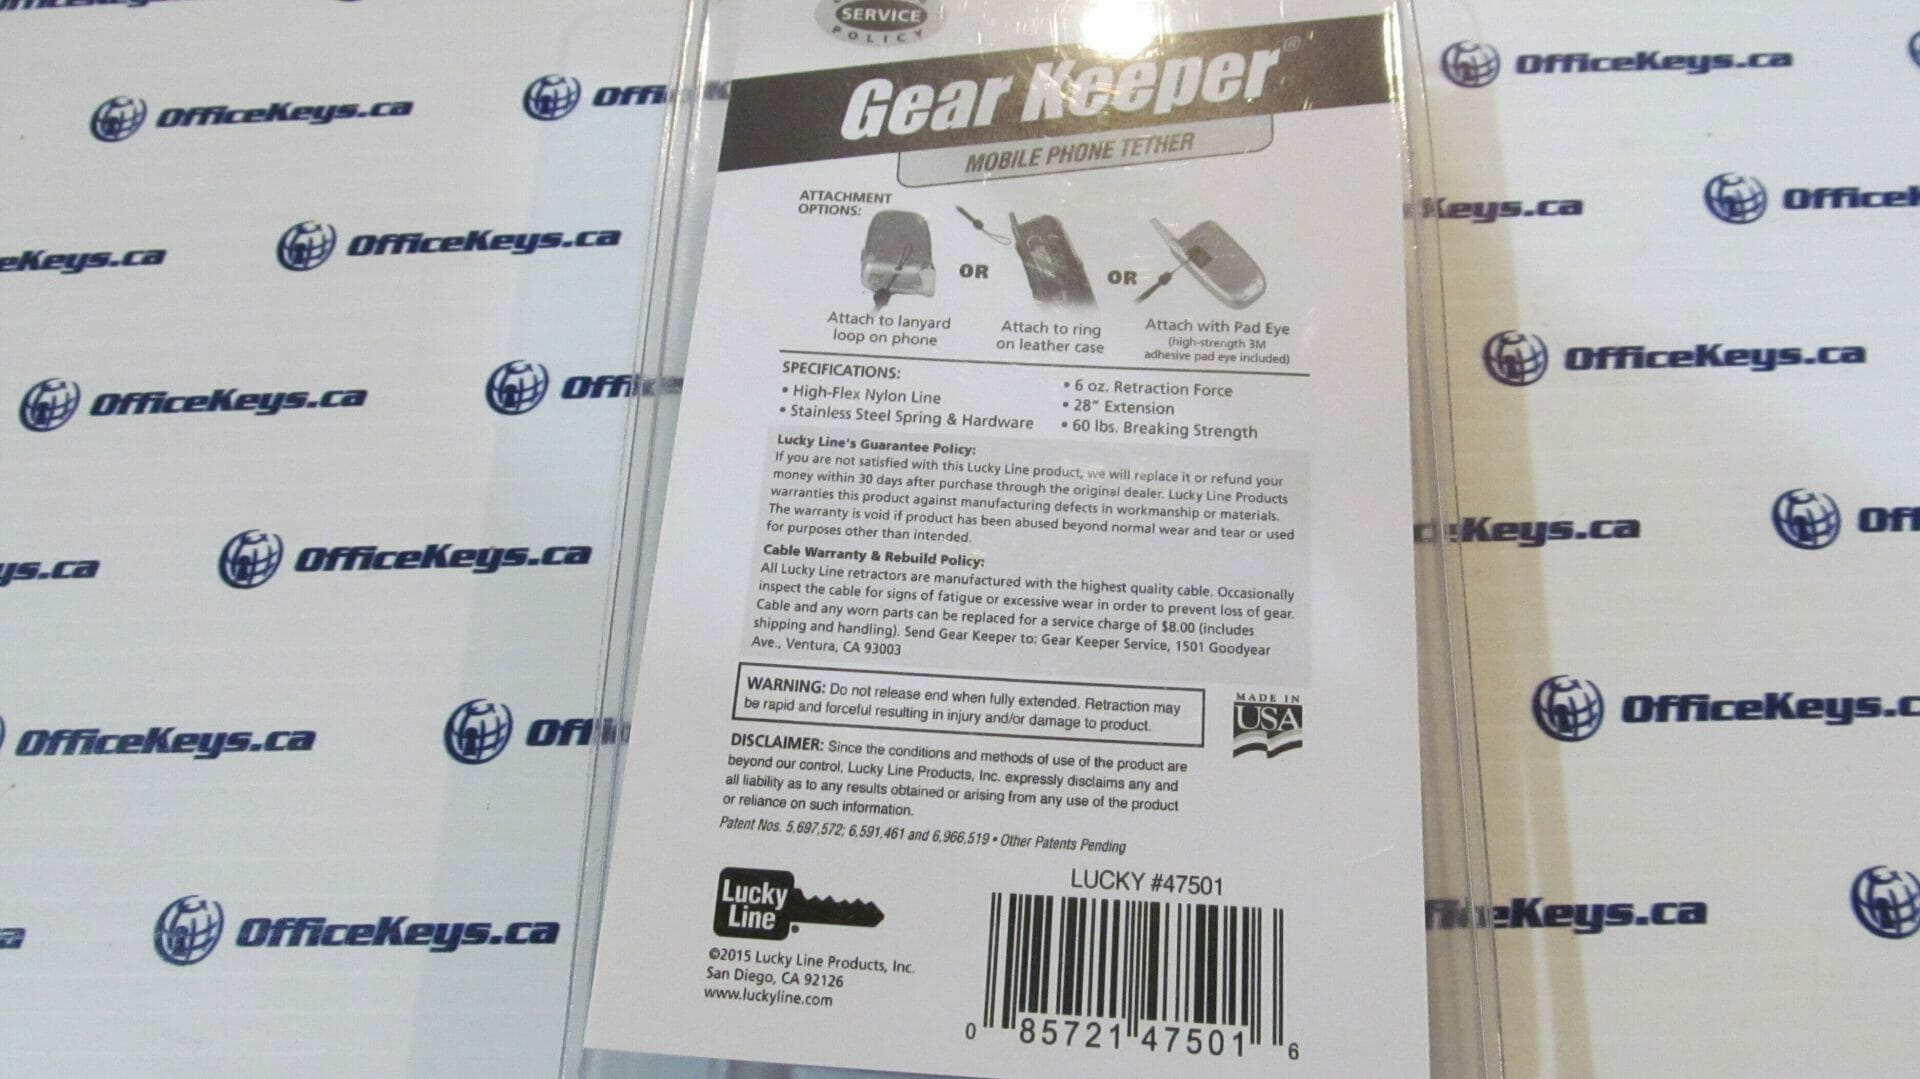 Cell Phone Gear Keeper